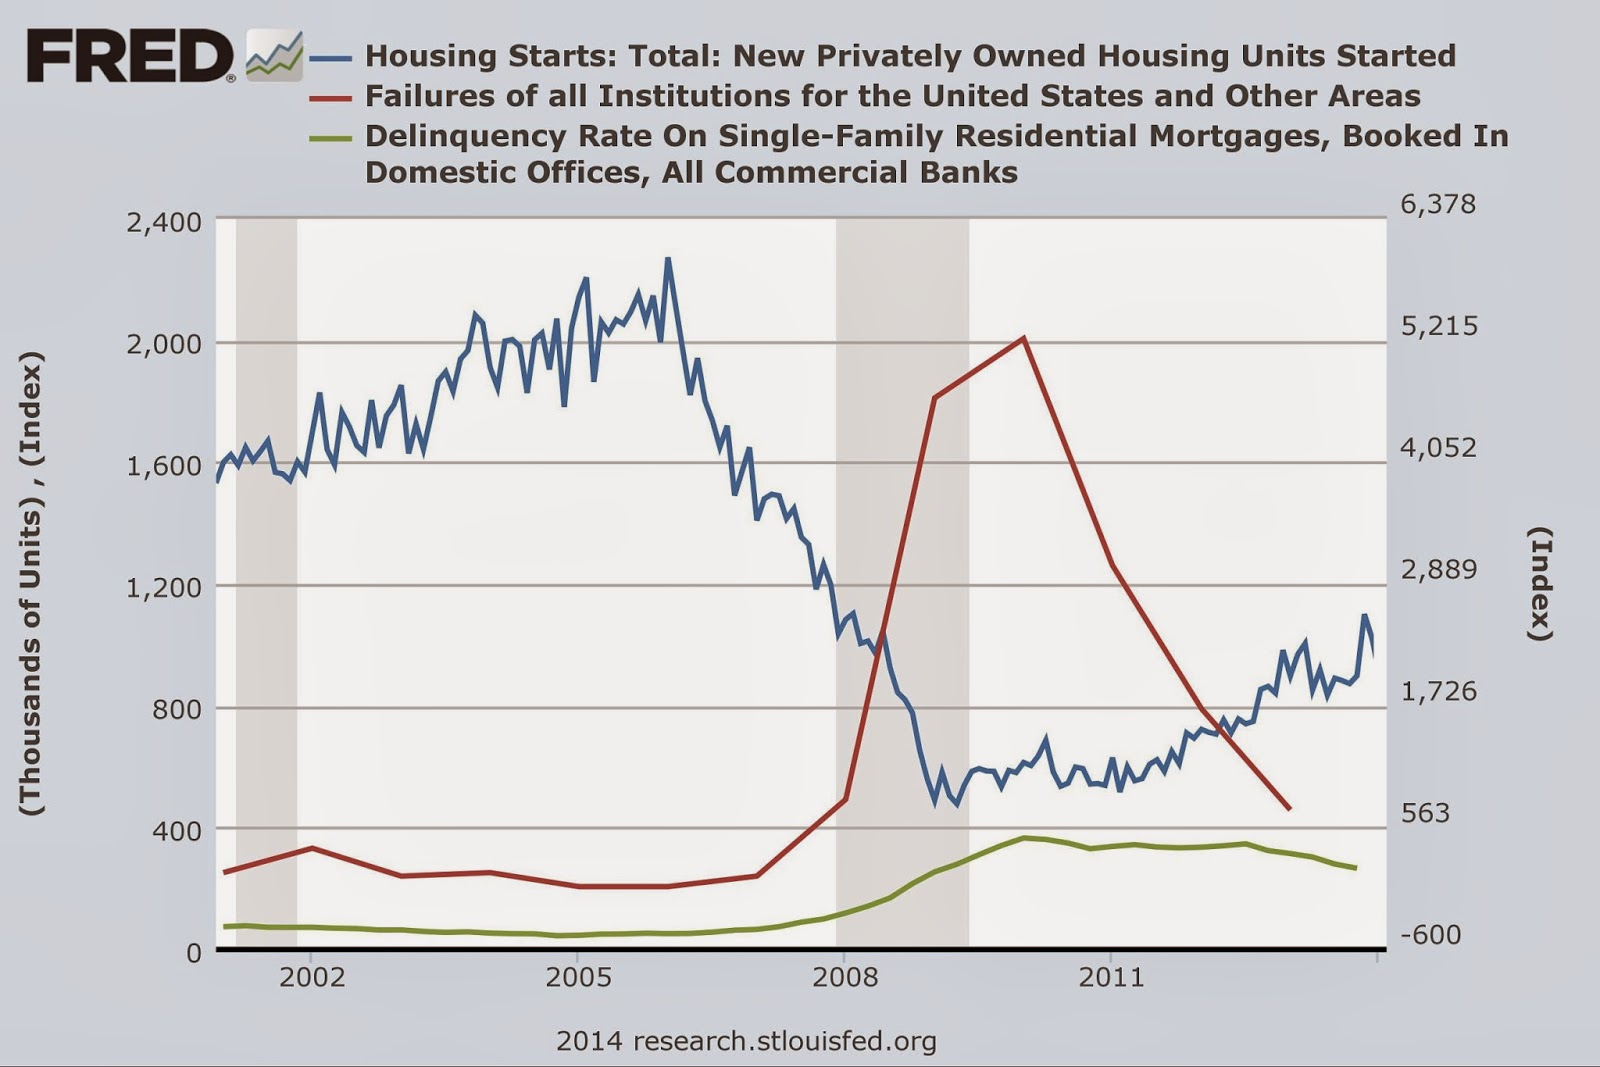 A graph of what started the Lesser Depression: Housing Starts, Institutional Failures, and Mortgage Delinquencies in the Lesser Depression or Great Recession or whatever it is we'll call it in the long run